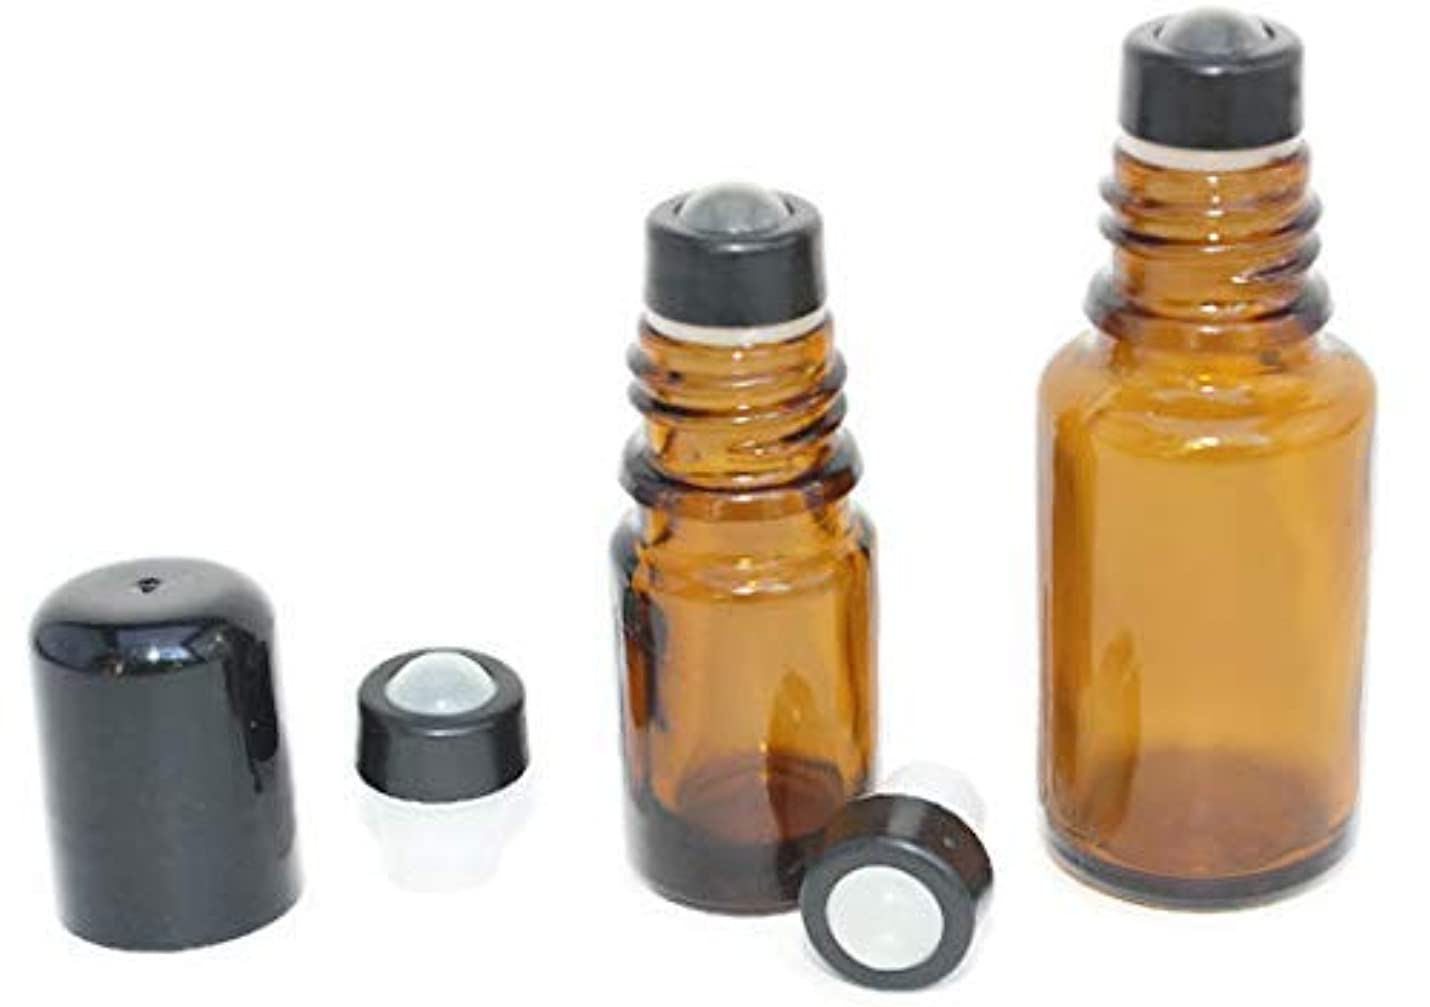 モーター破産マダムEssential Oil Roller Inserts for 5 and 15ml Essential Oil Bottles. Pack of 12 GLASS Leak Proof with removable snap ring Roller Tops. Great for Oils, Blends, and DIY. [並行輸入品]